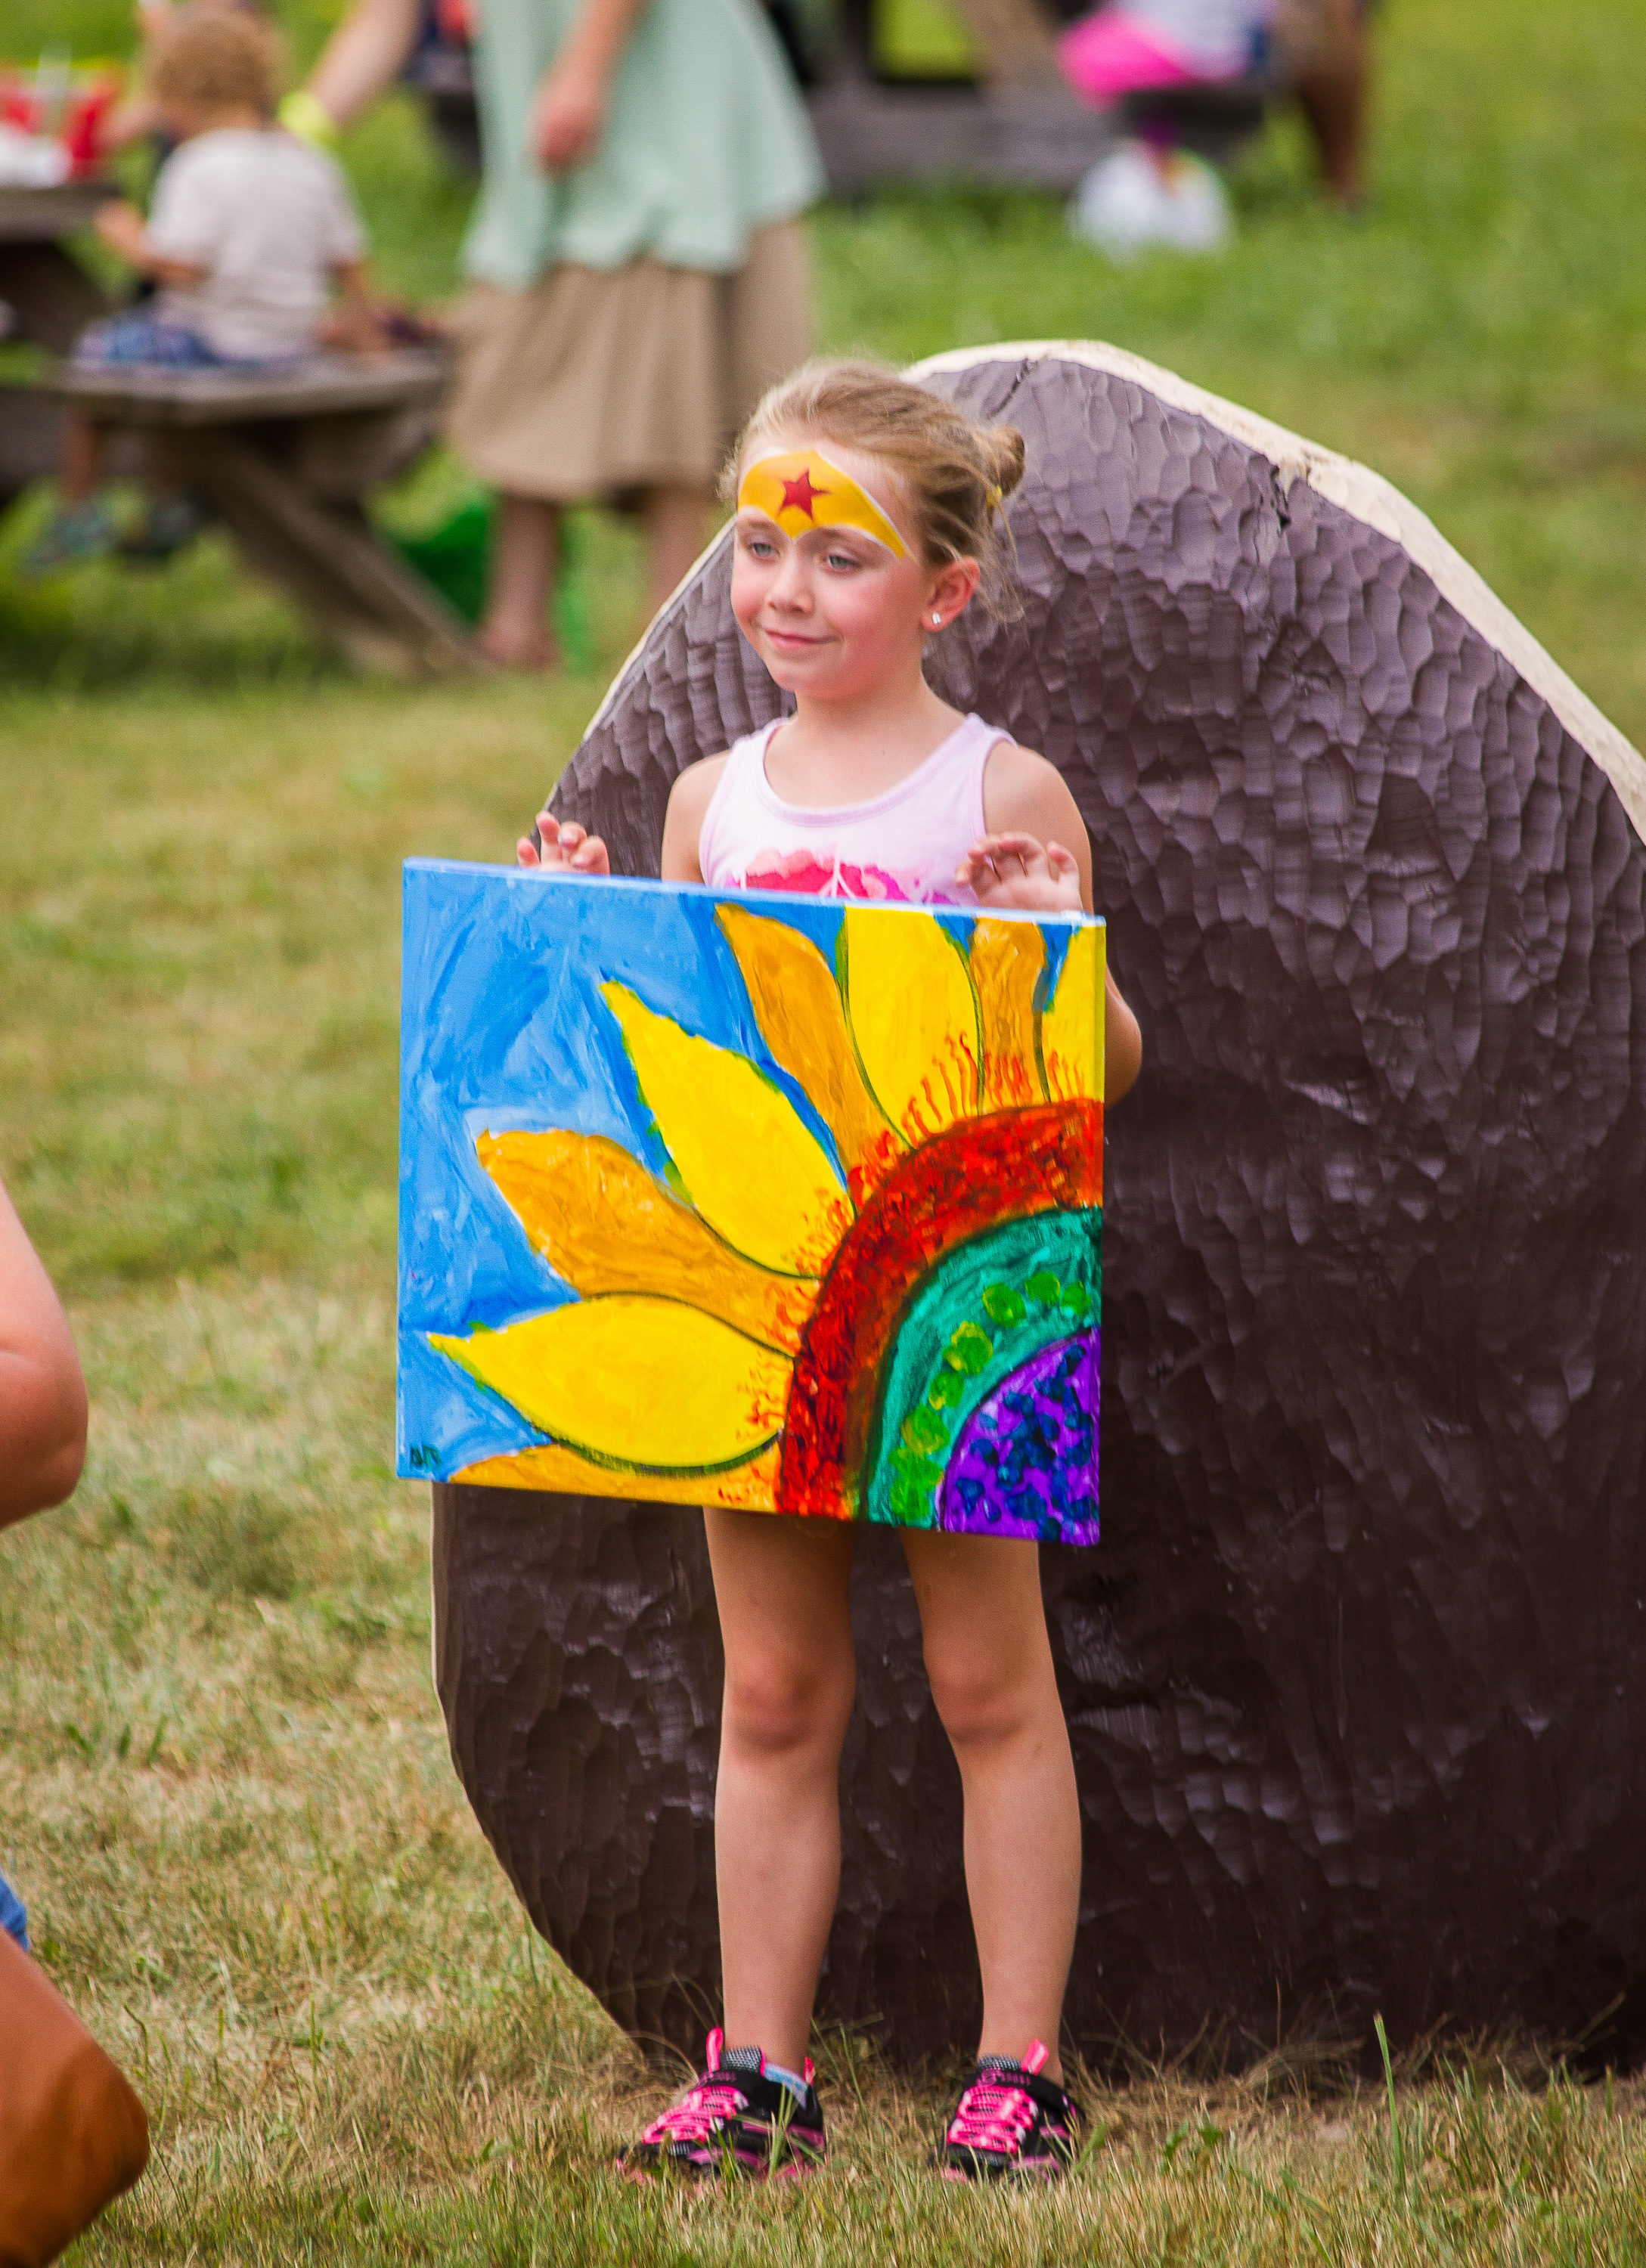 Sunflower_Art_Fest_CodyBuesing-111.jpg